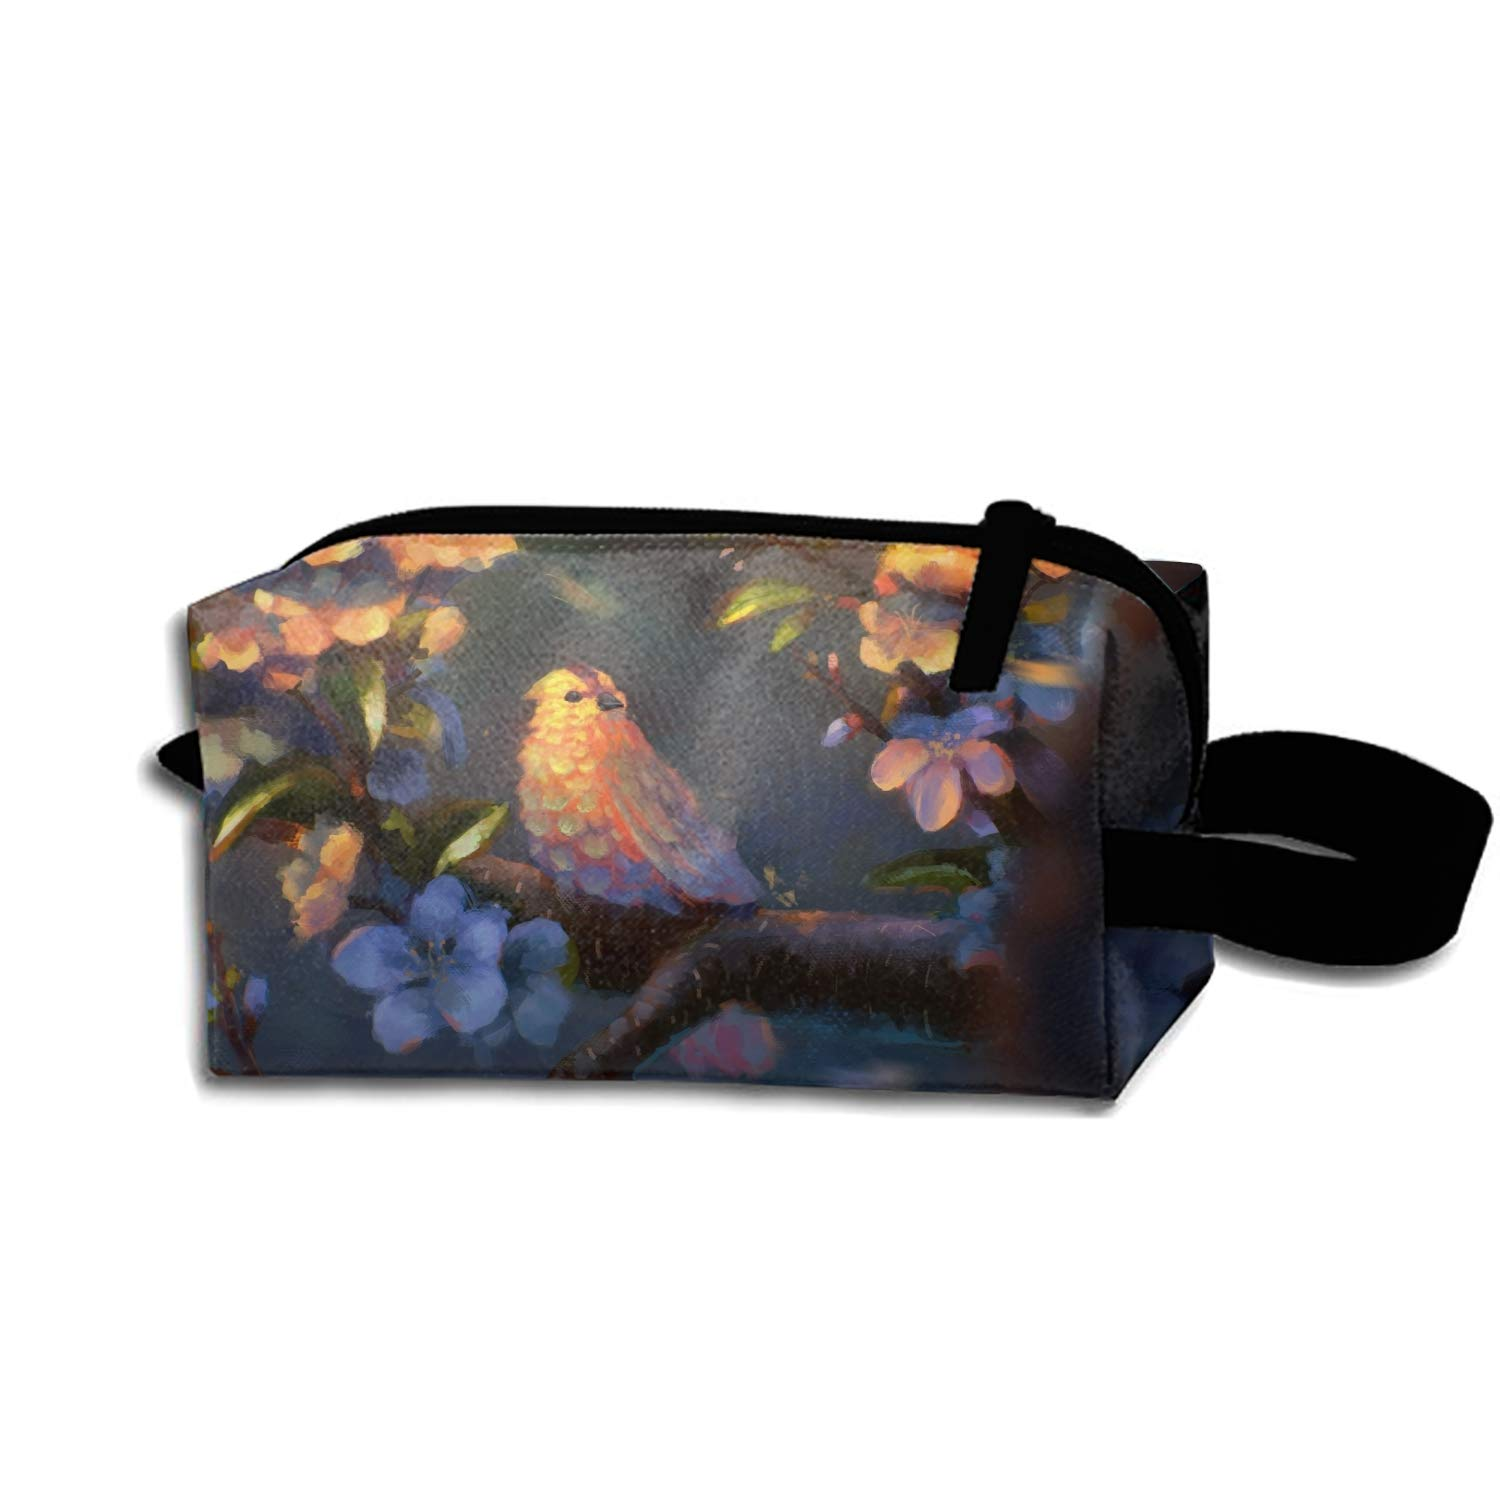 ab98f55e6454 Amazon.com : Cosmetic Bags Portable Travel Toiletry Pouch Awesome ...